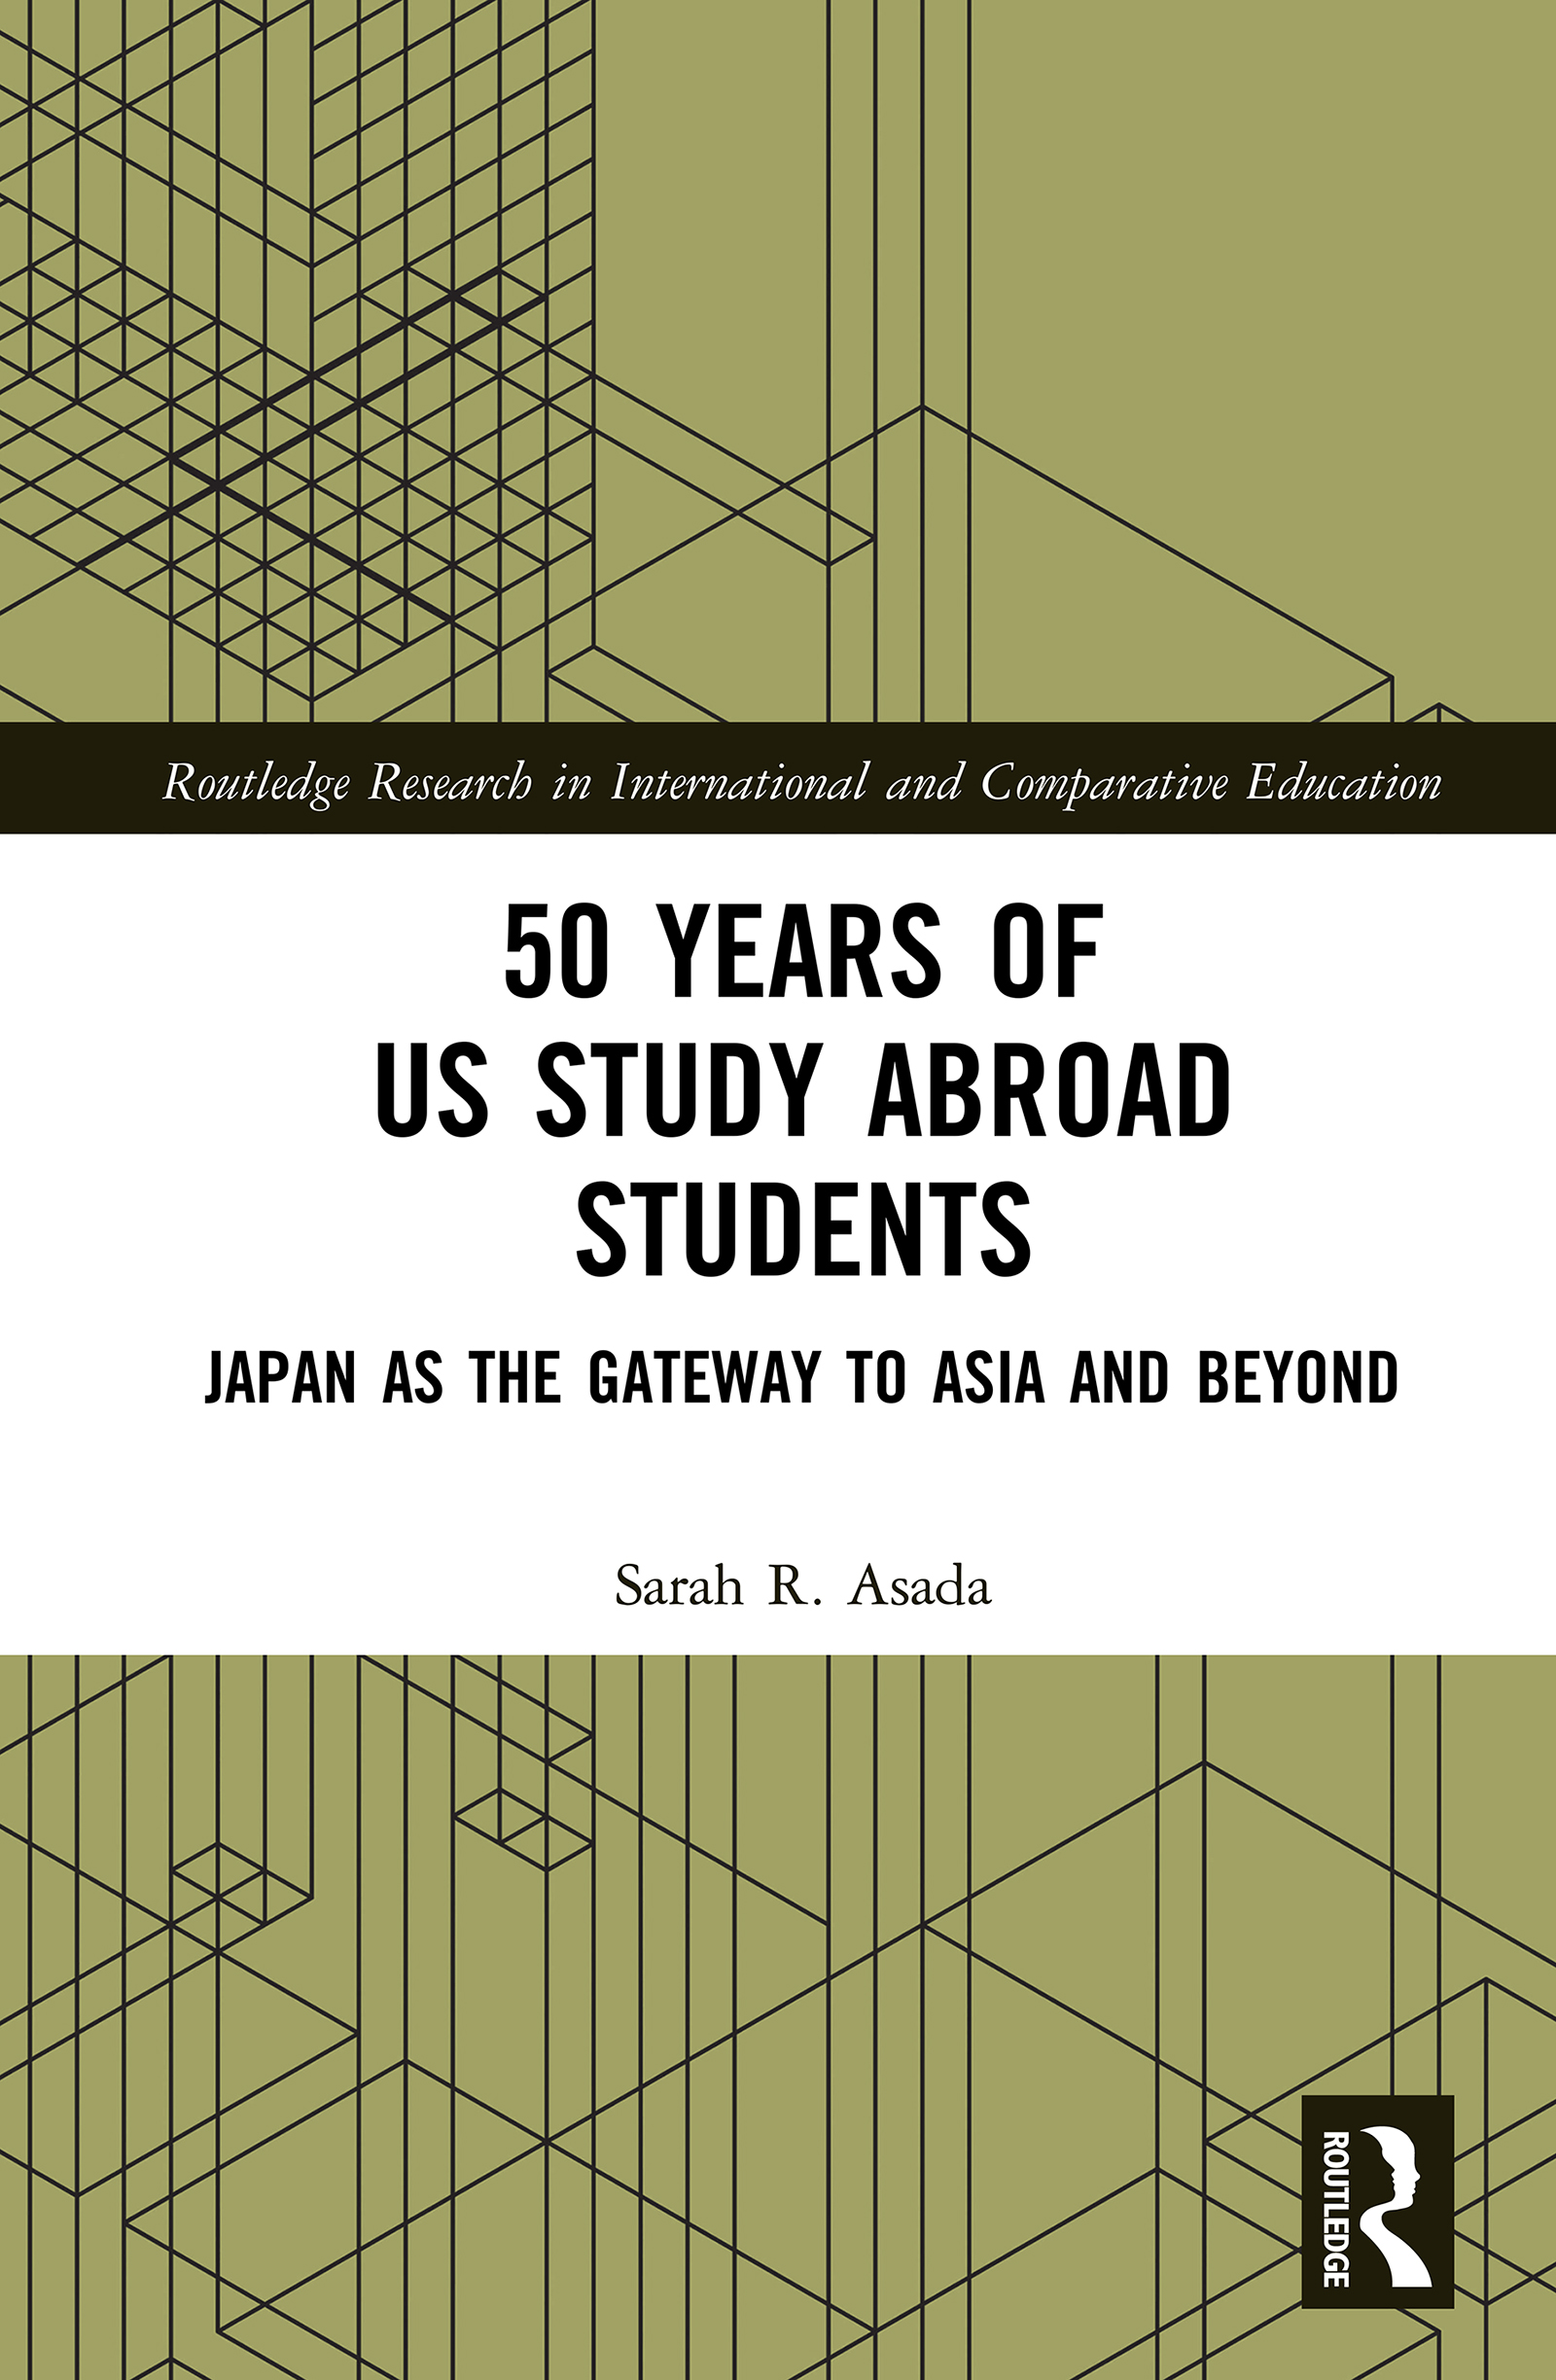 50 Years of US Study Abroad Students: Japan as the Gateway to Asia and Beyond book cover